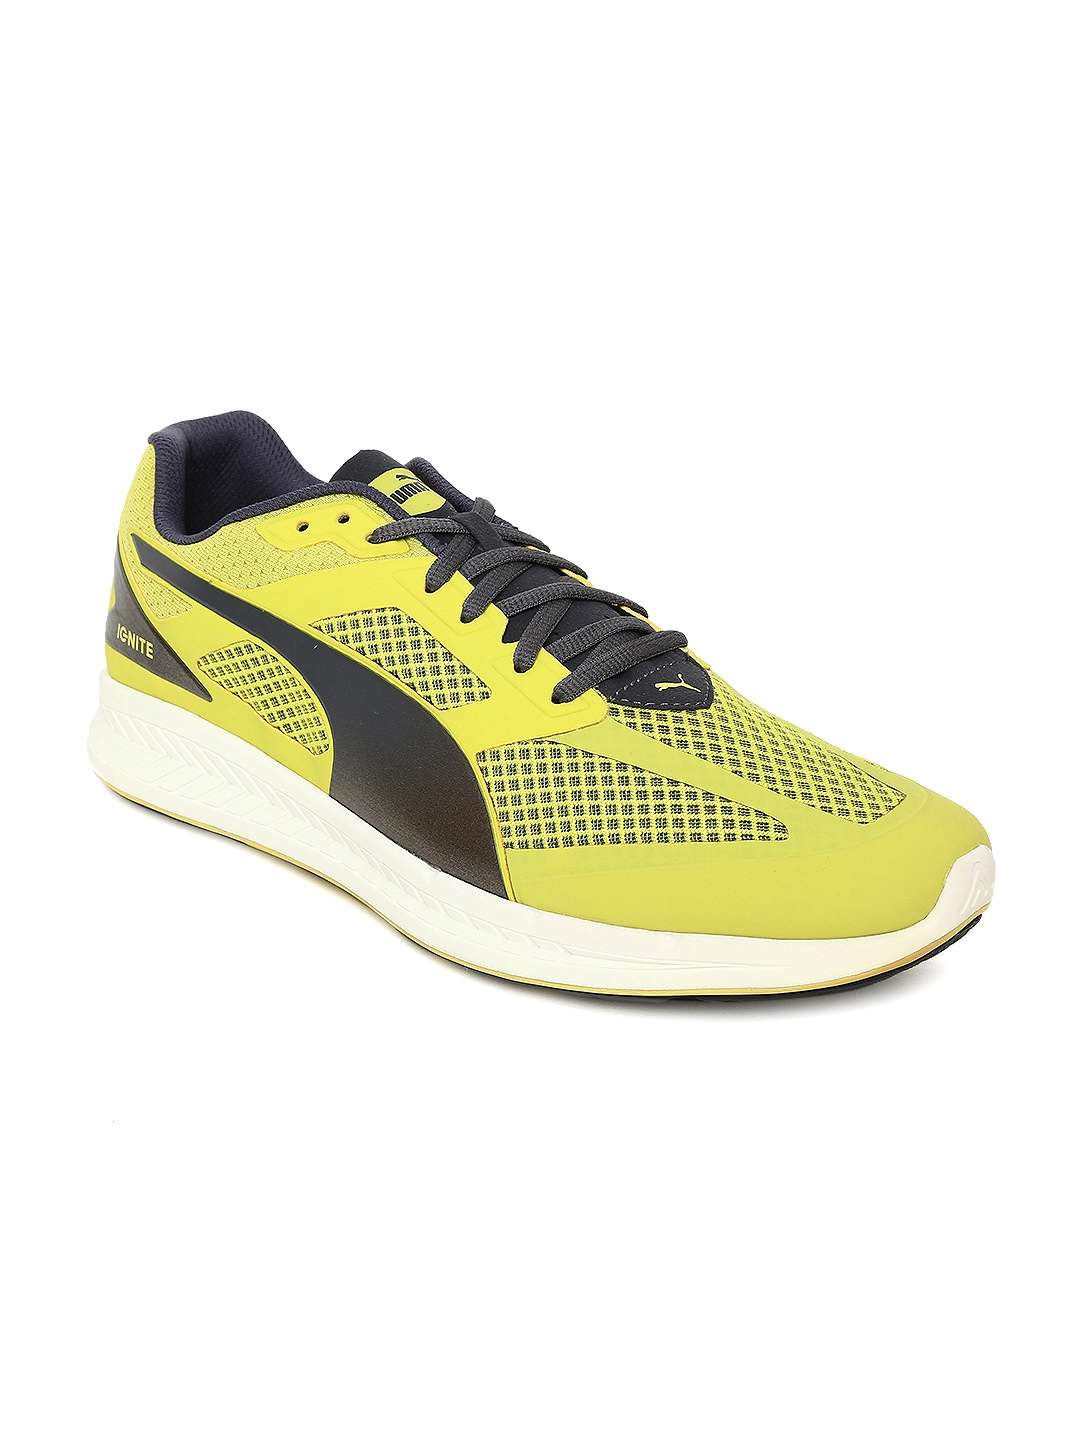 dcacdfc6da Puma Men Yellow IGNITE Mesh Running Shoes